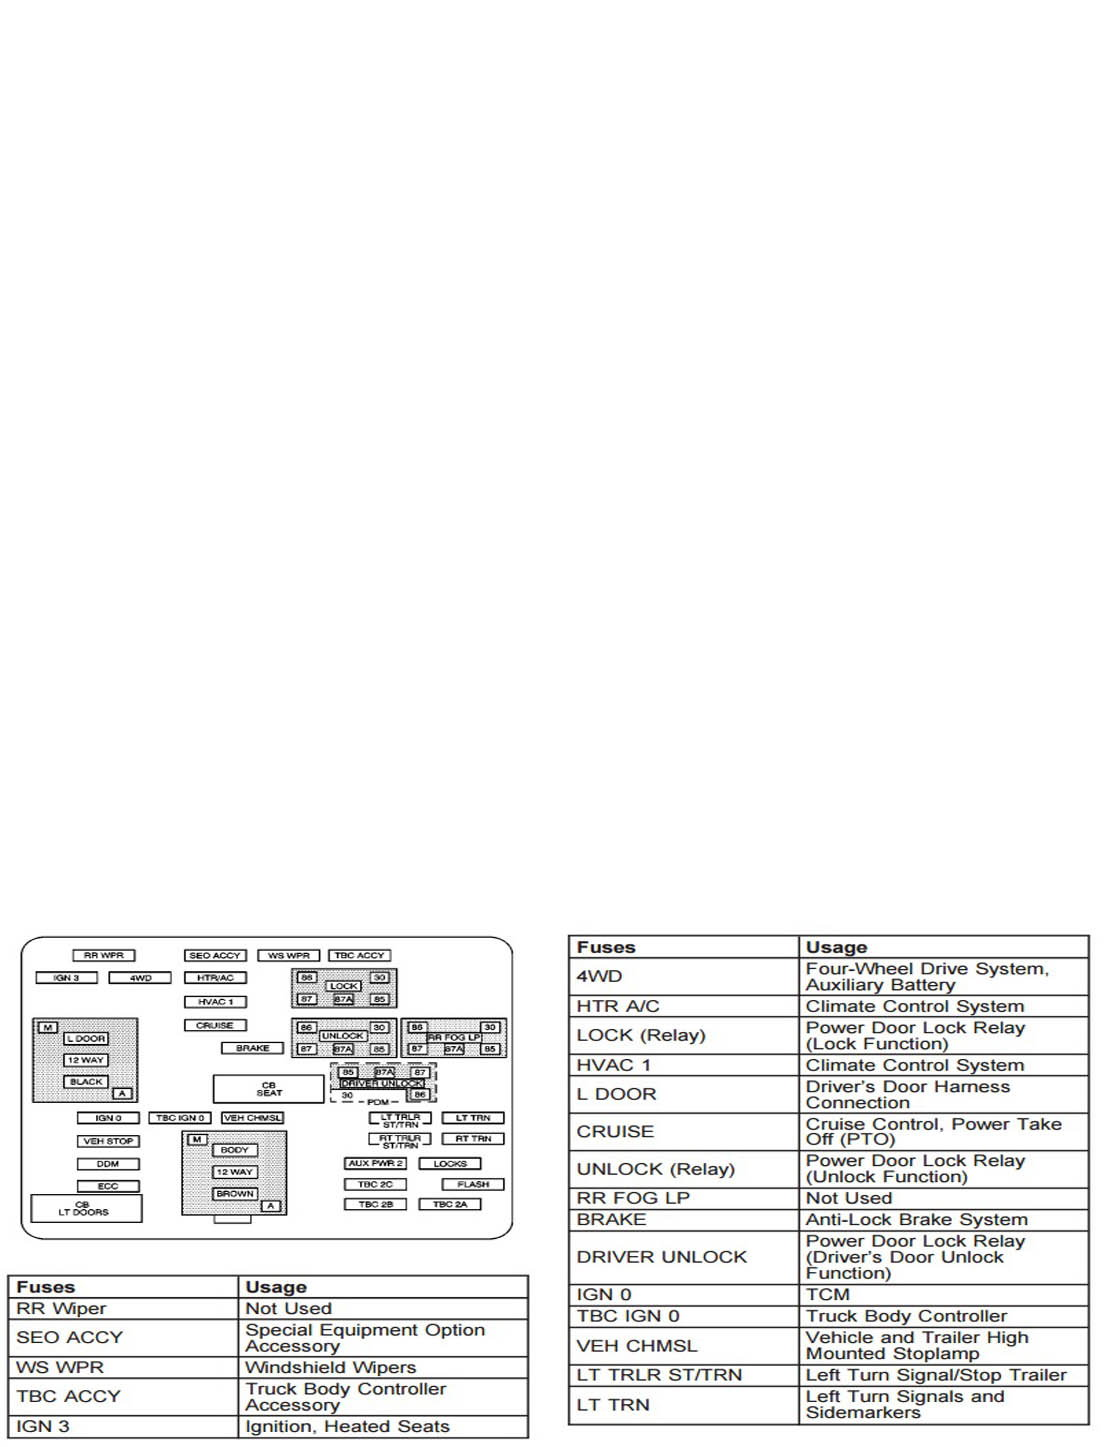 chevy silverado wiring diagram image 2004 chevy silverado wiring diagram wiring diagram and schematic on 2004 chevy silverado wiring diagram